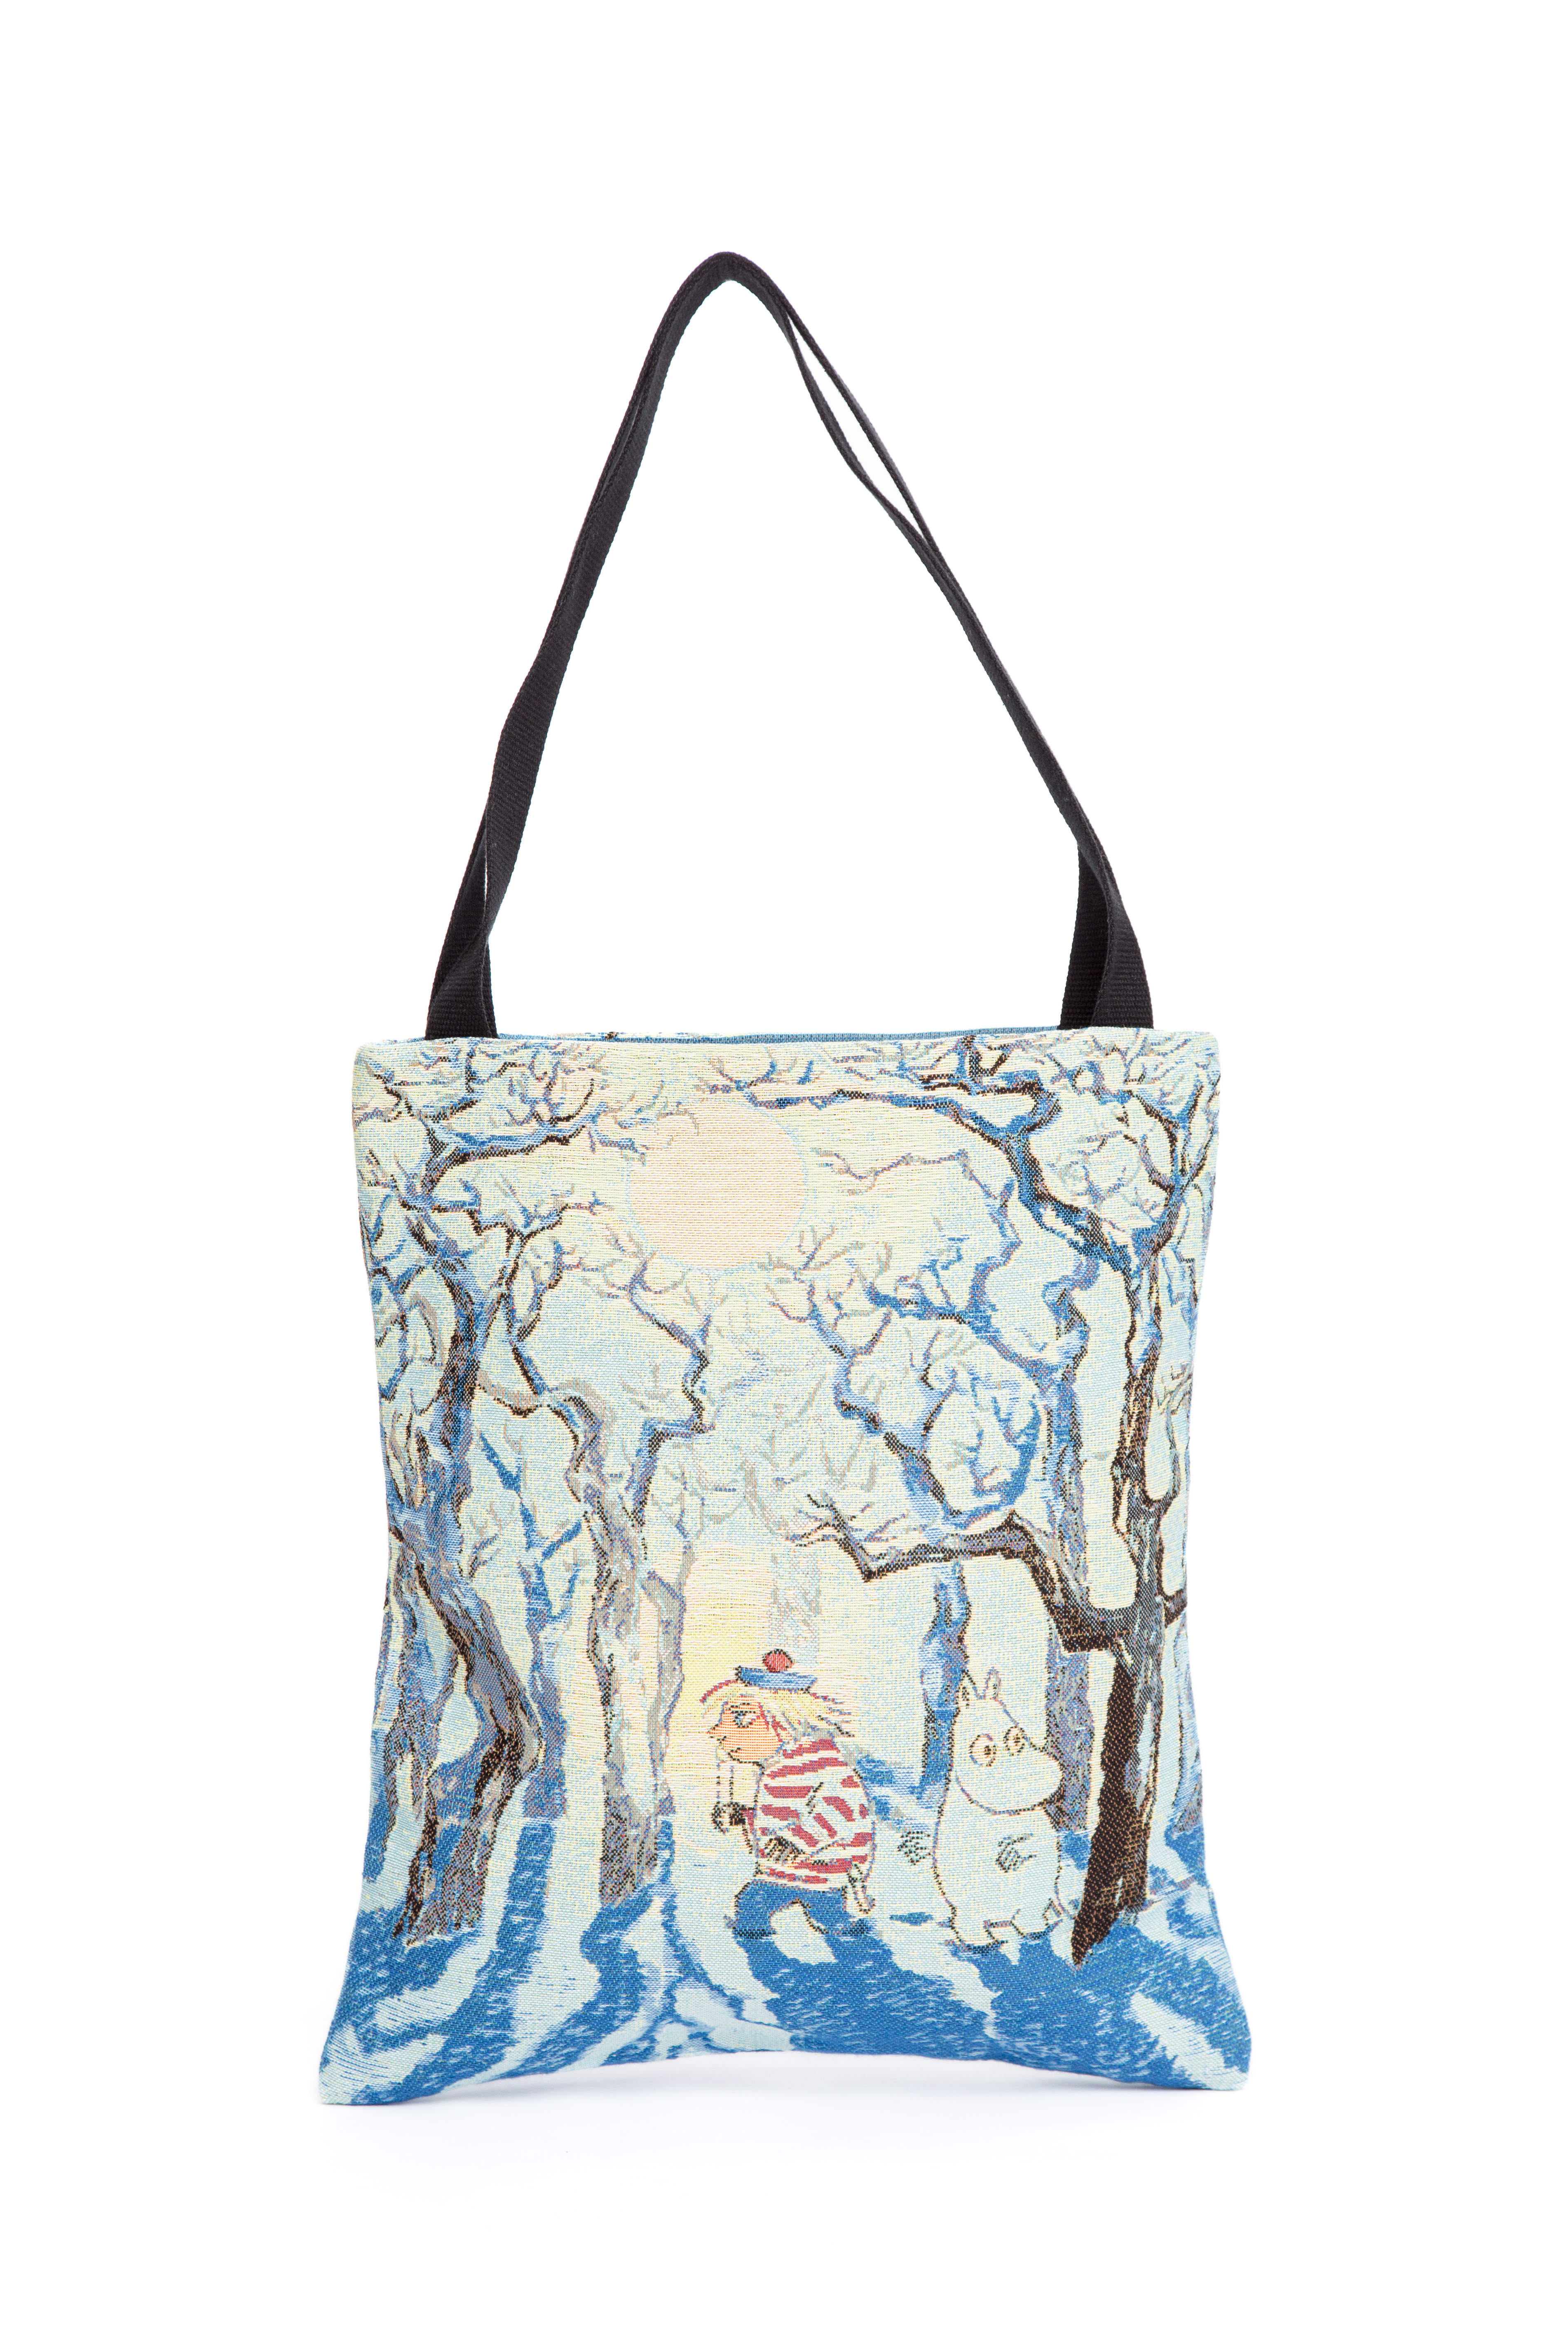 Aurora Decorari Moomin Gobelin Shopping Bag Moomin Trollvinter 205BSM